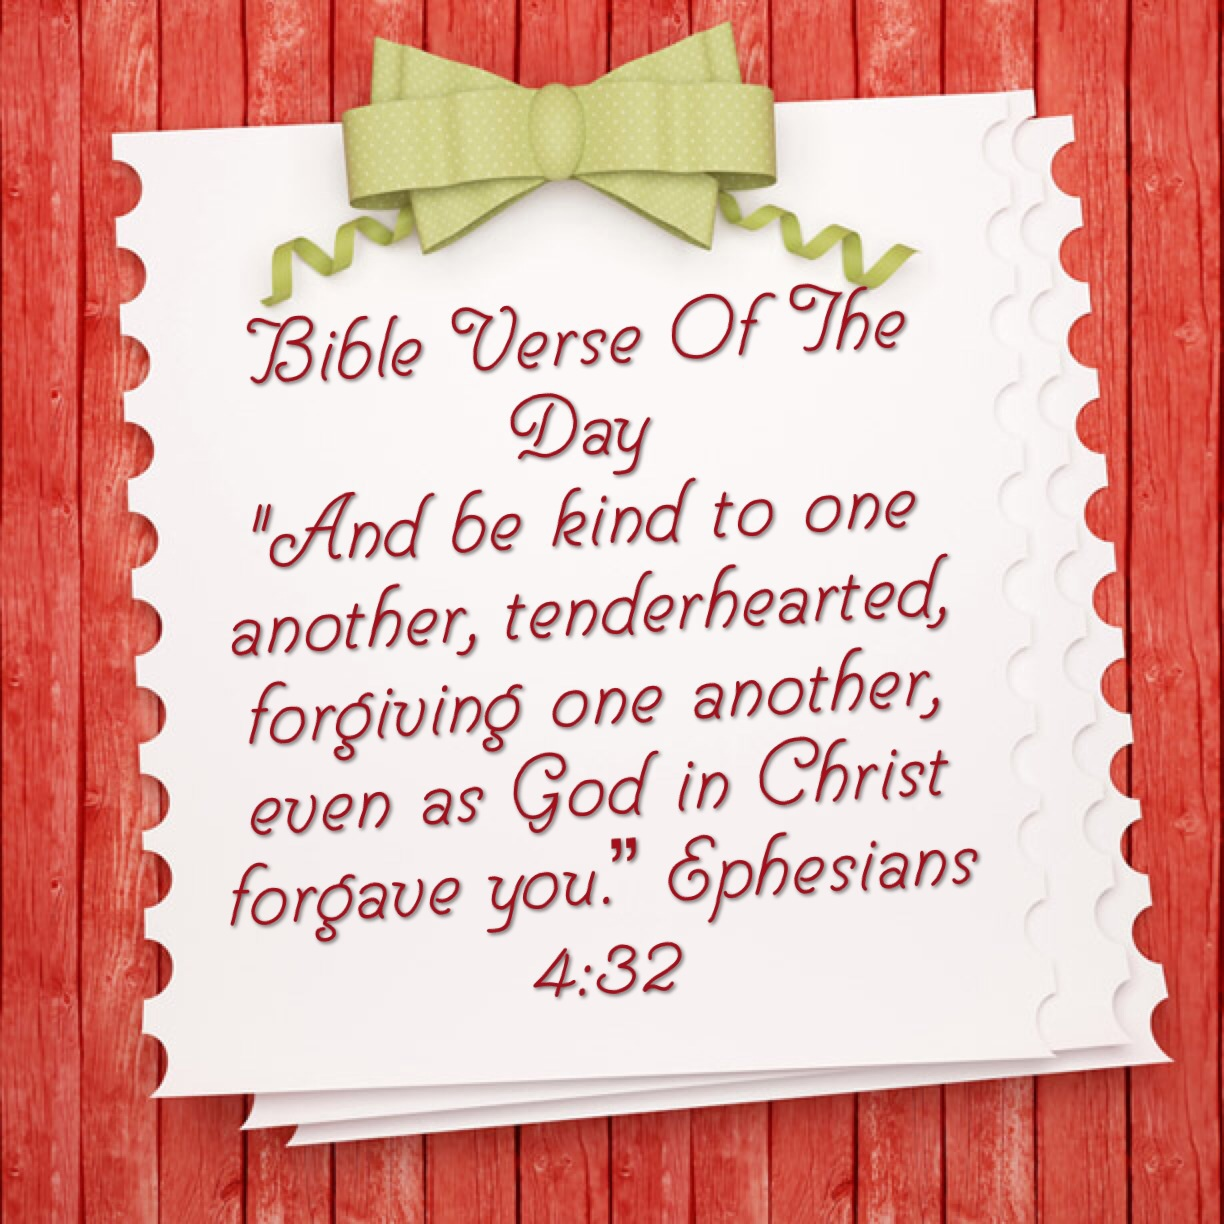 """Blessing Quotes Bible: Bible Verse Of The Day- """"Forgiveness Leads To Blessings"""